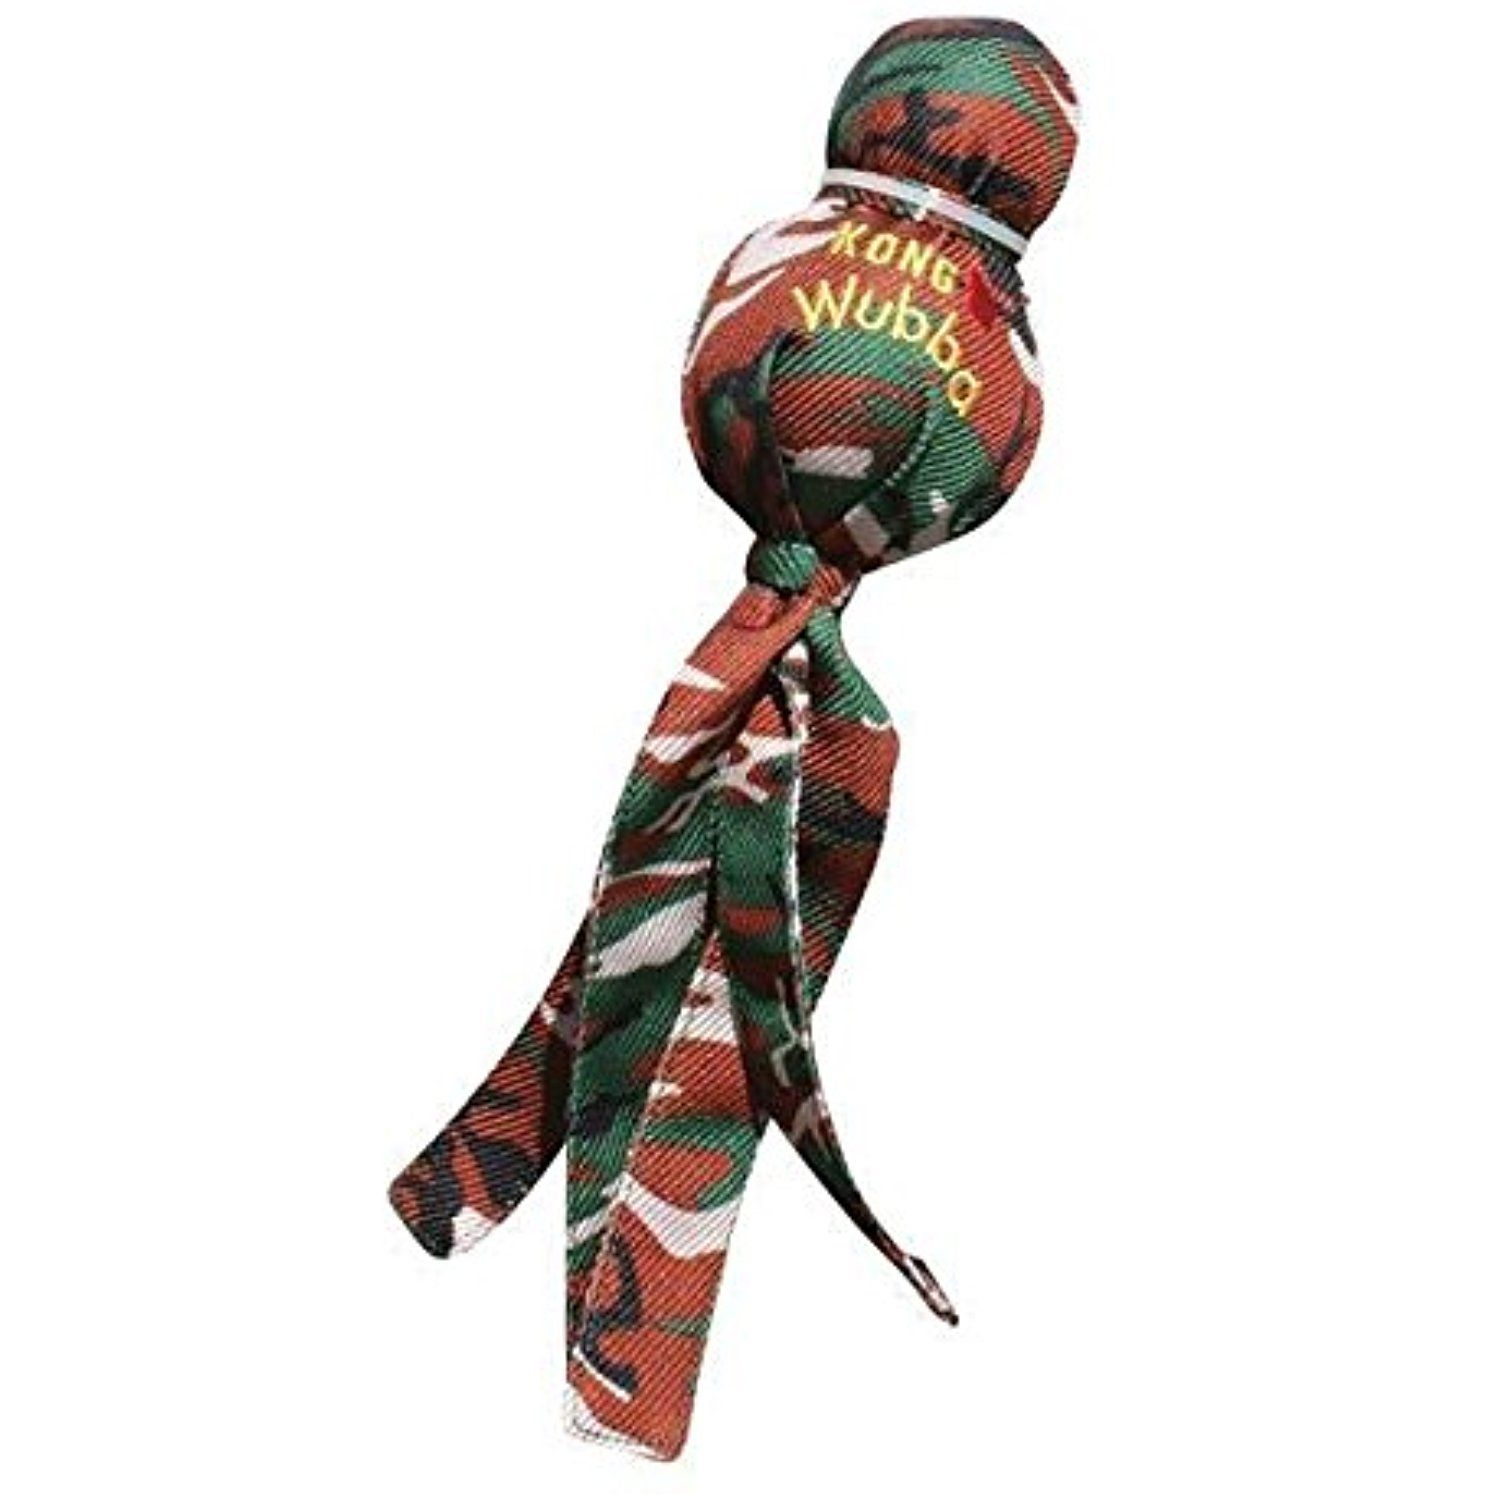 Kong Camo Wubba Interactive Tug Toss Play Squeaker Toy for Dog Puppy Choose Size